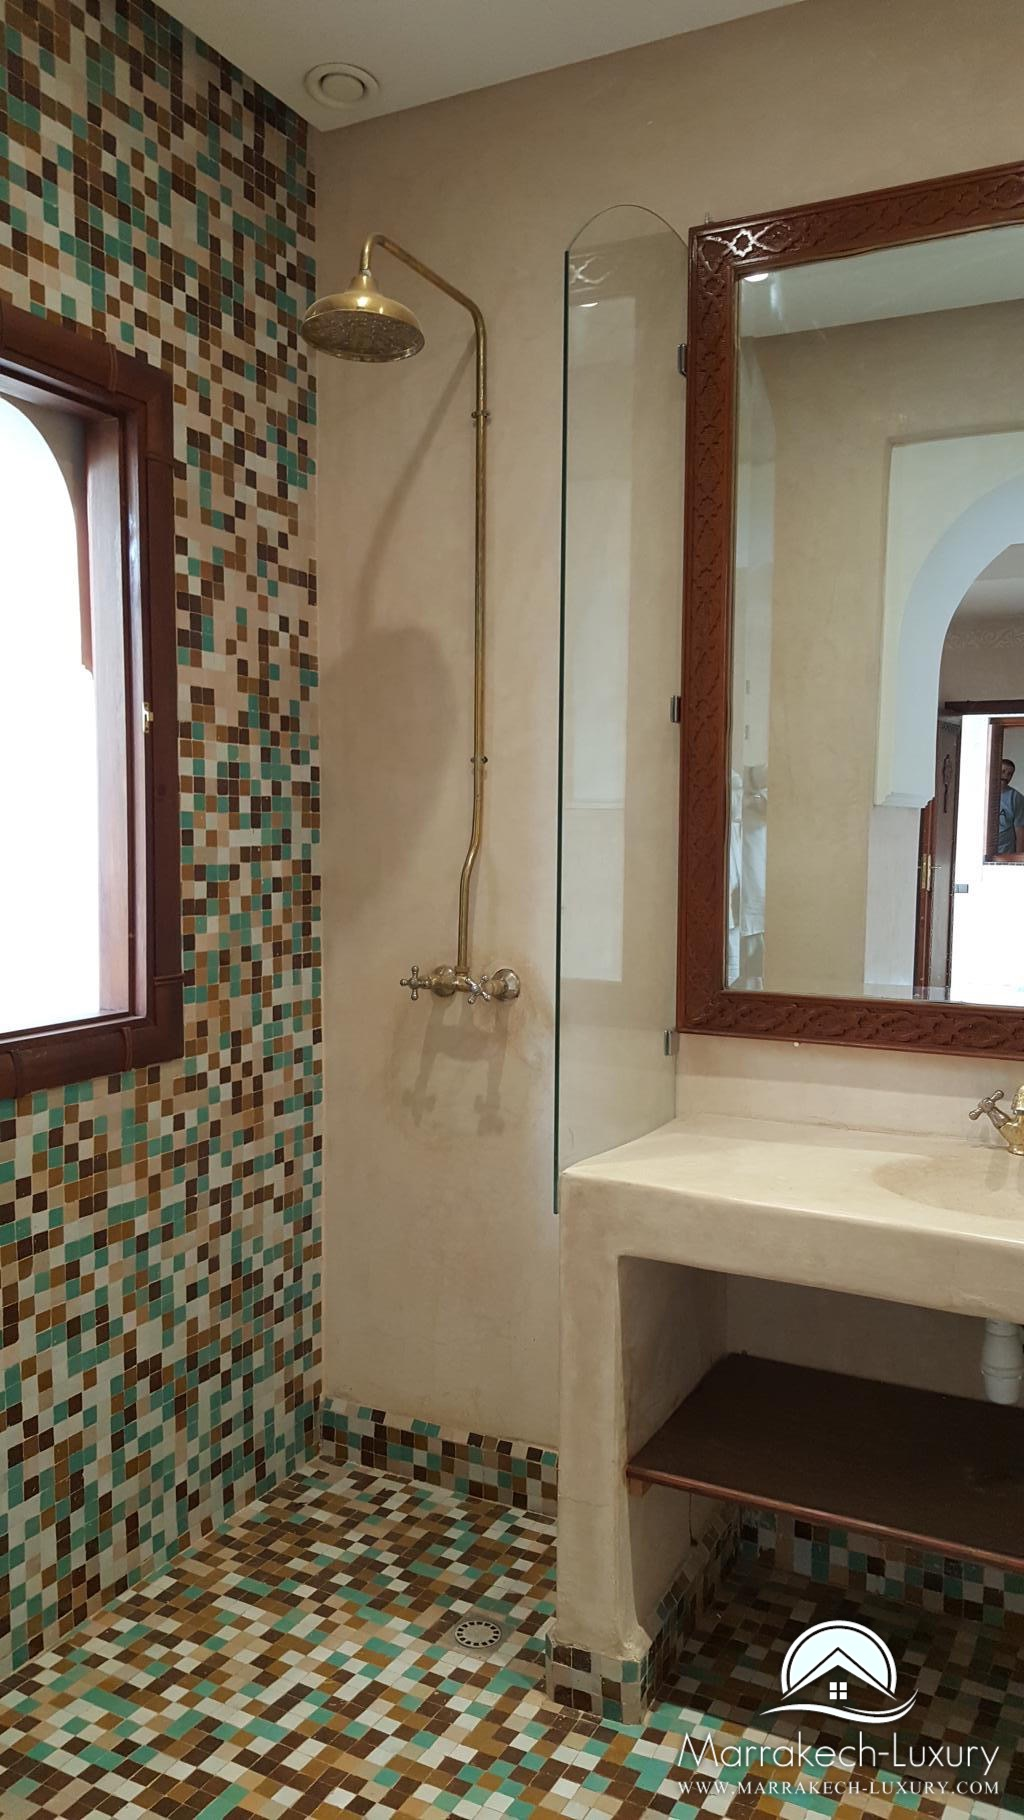 Riaavmed1030 33 agence immobili re marrakech acheter for Agence immobiliere 33